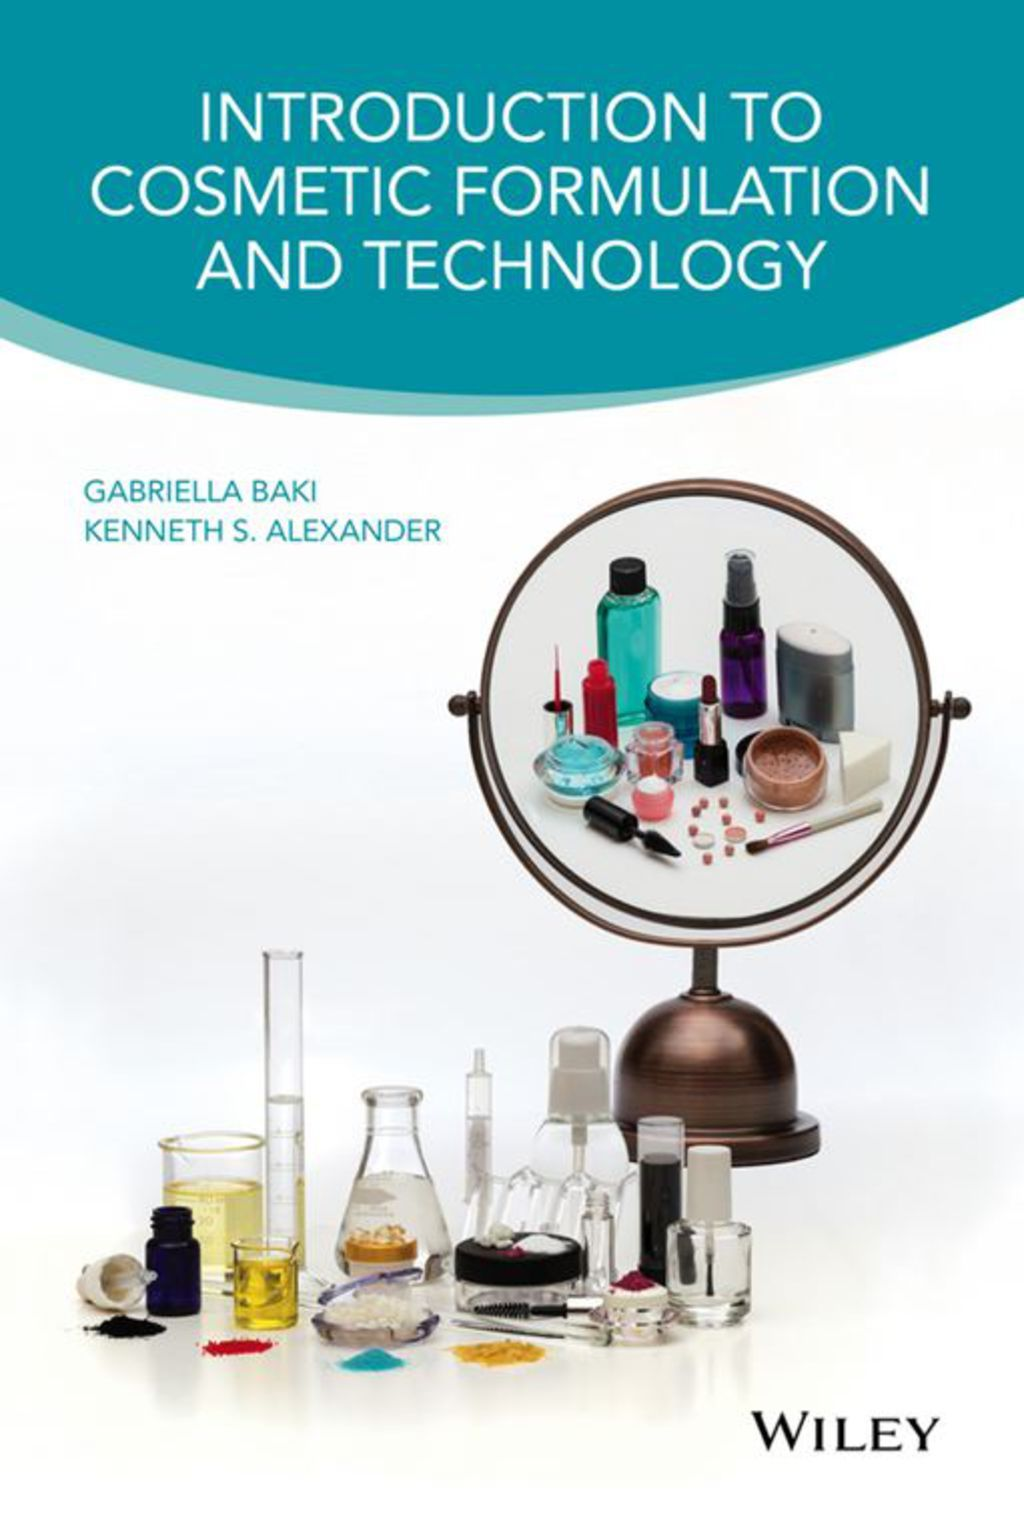 Introduction To Cosmetic Formulation And Technology Ebook Cosmetics Ingredients Science Books Organic Oral Care